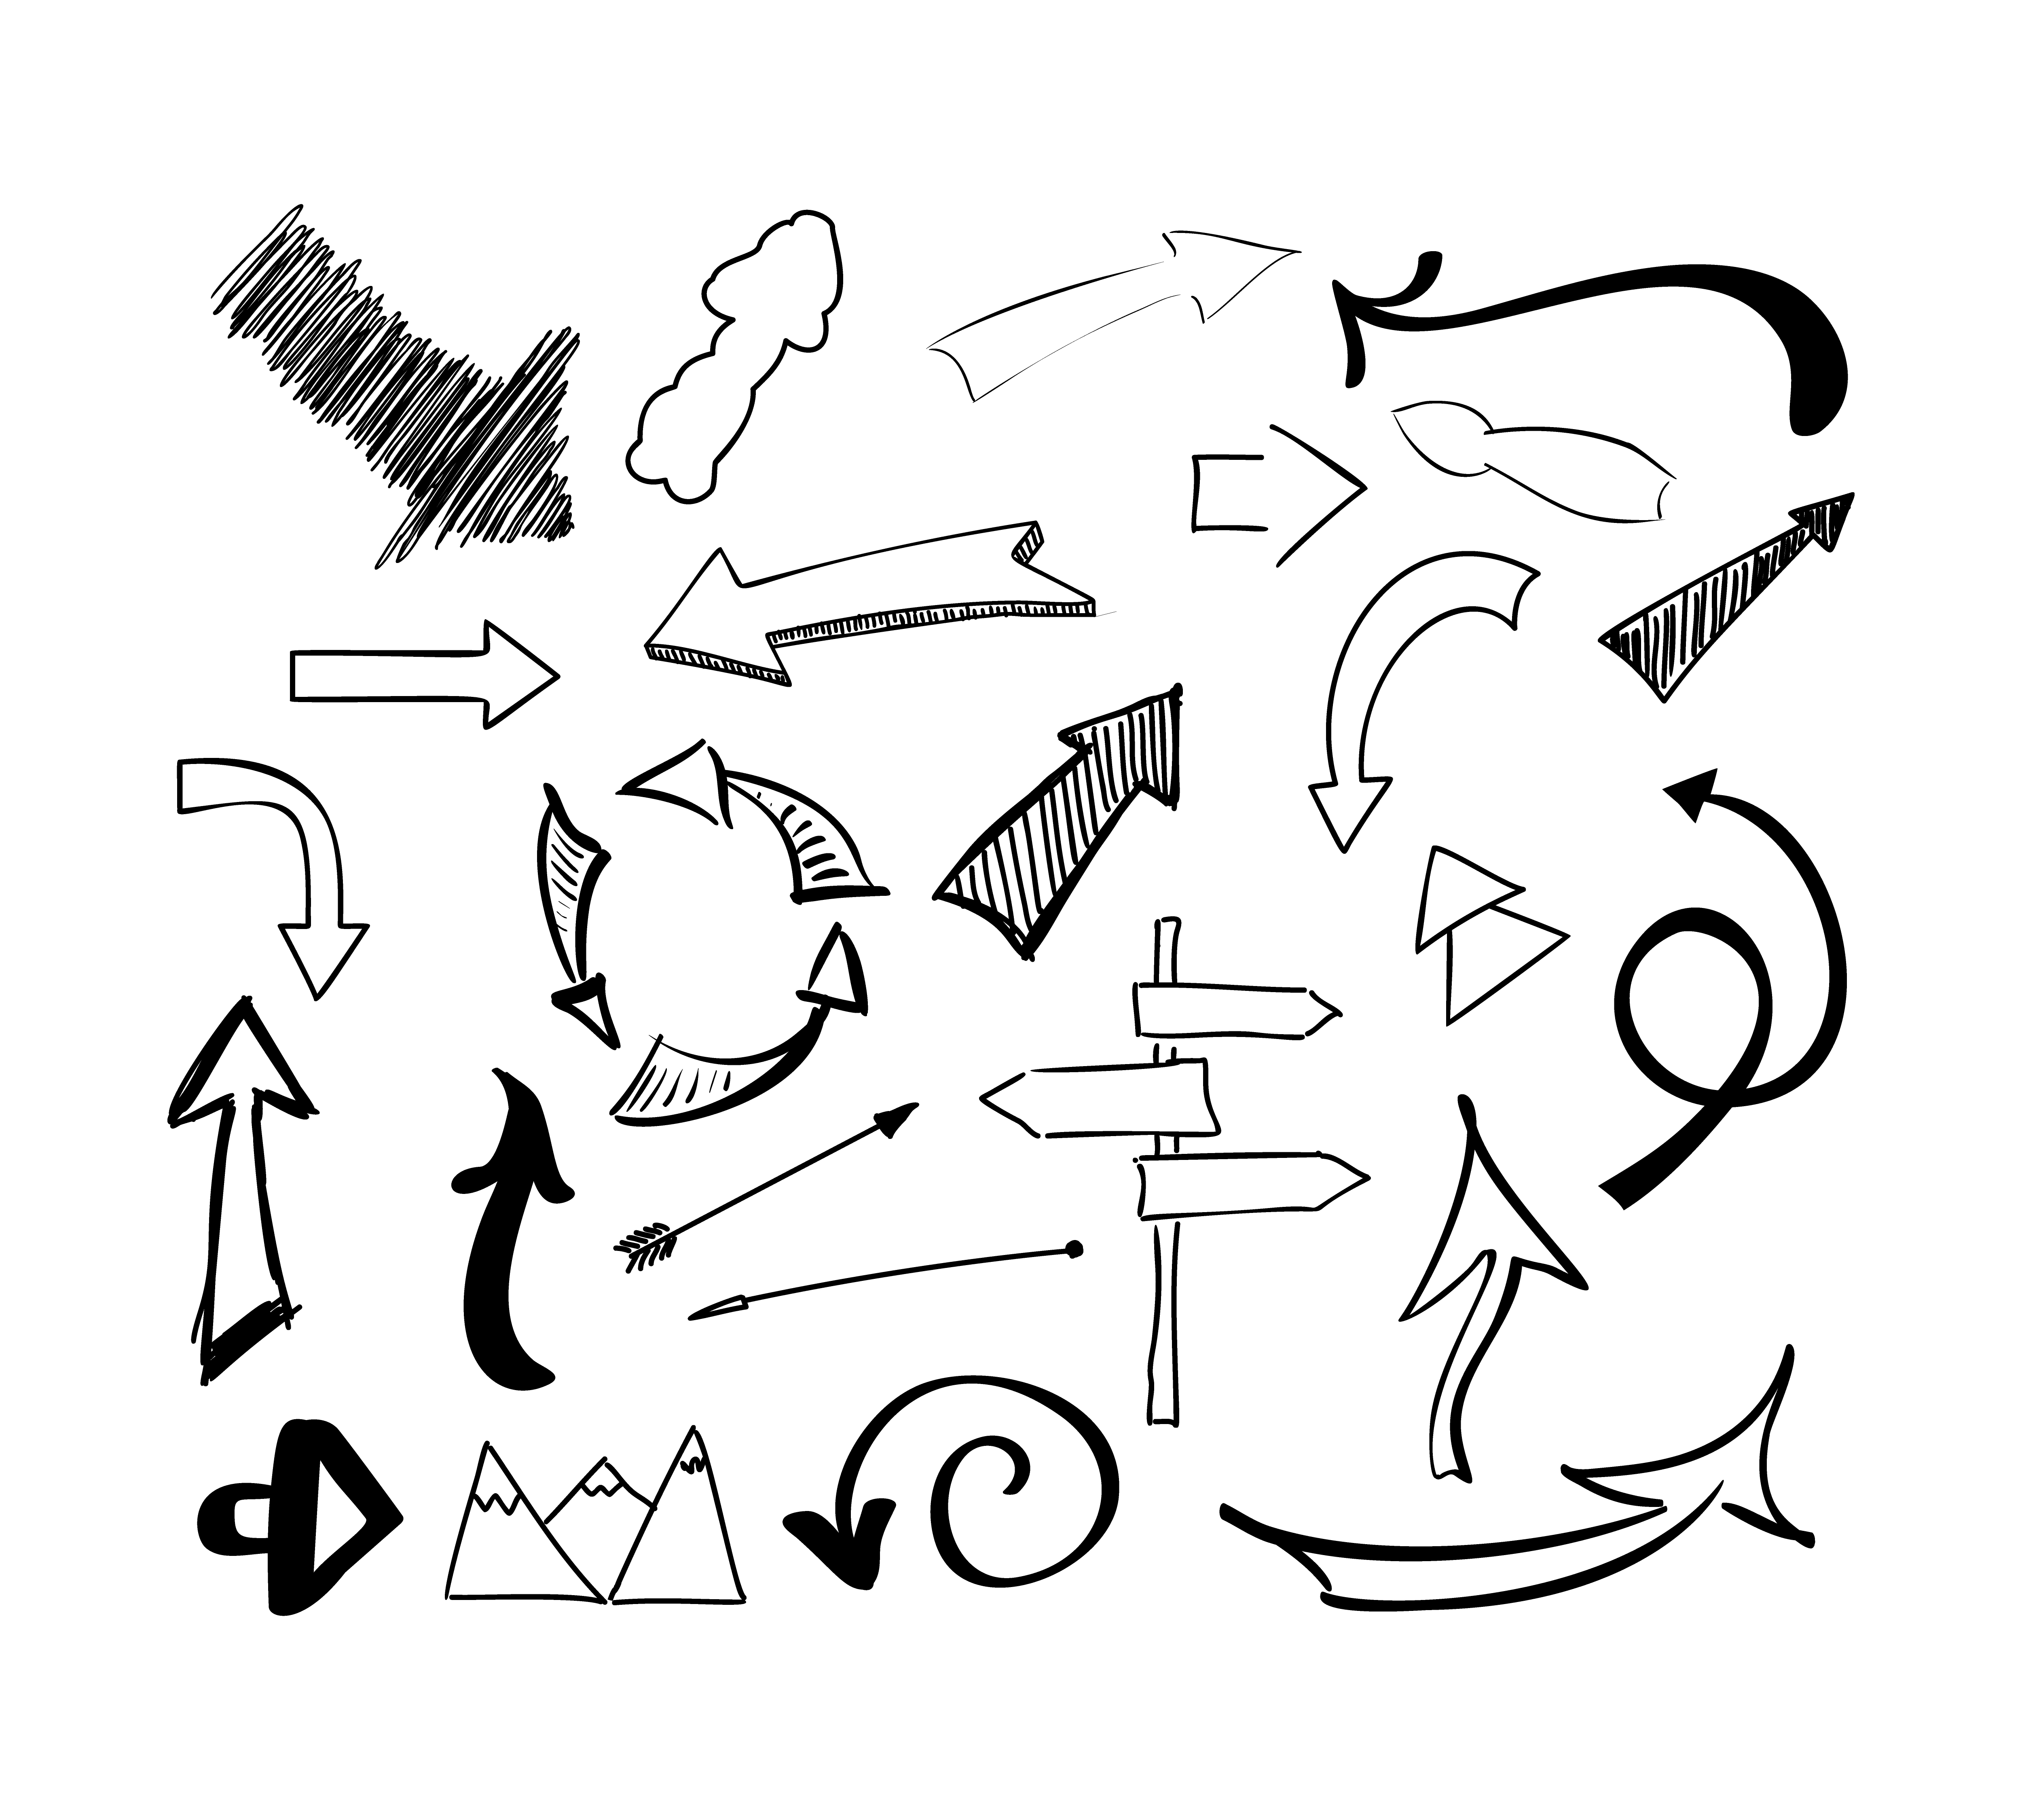 Hand Drawn Sketch Doodle Arrows Vector Set Isolated